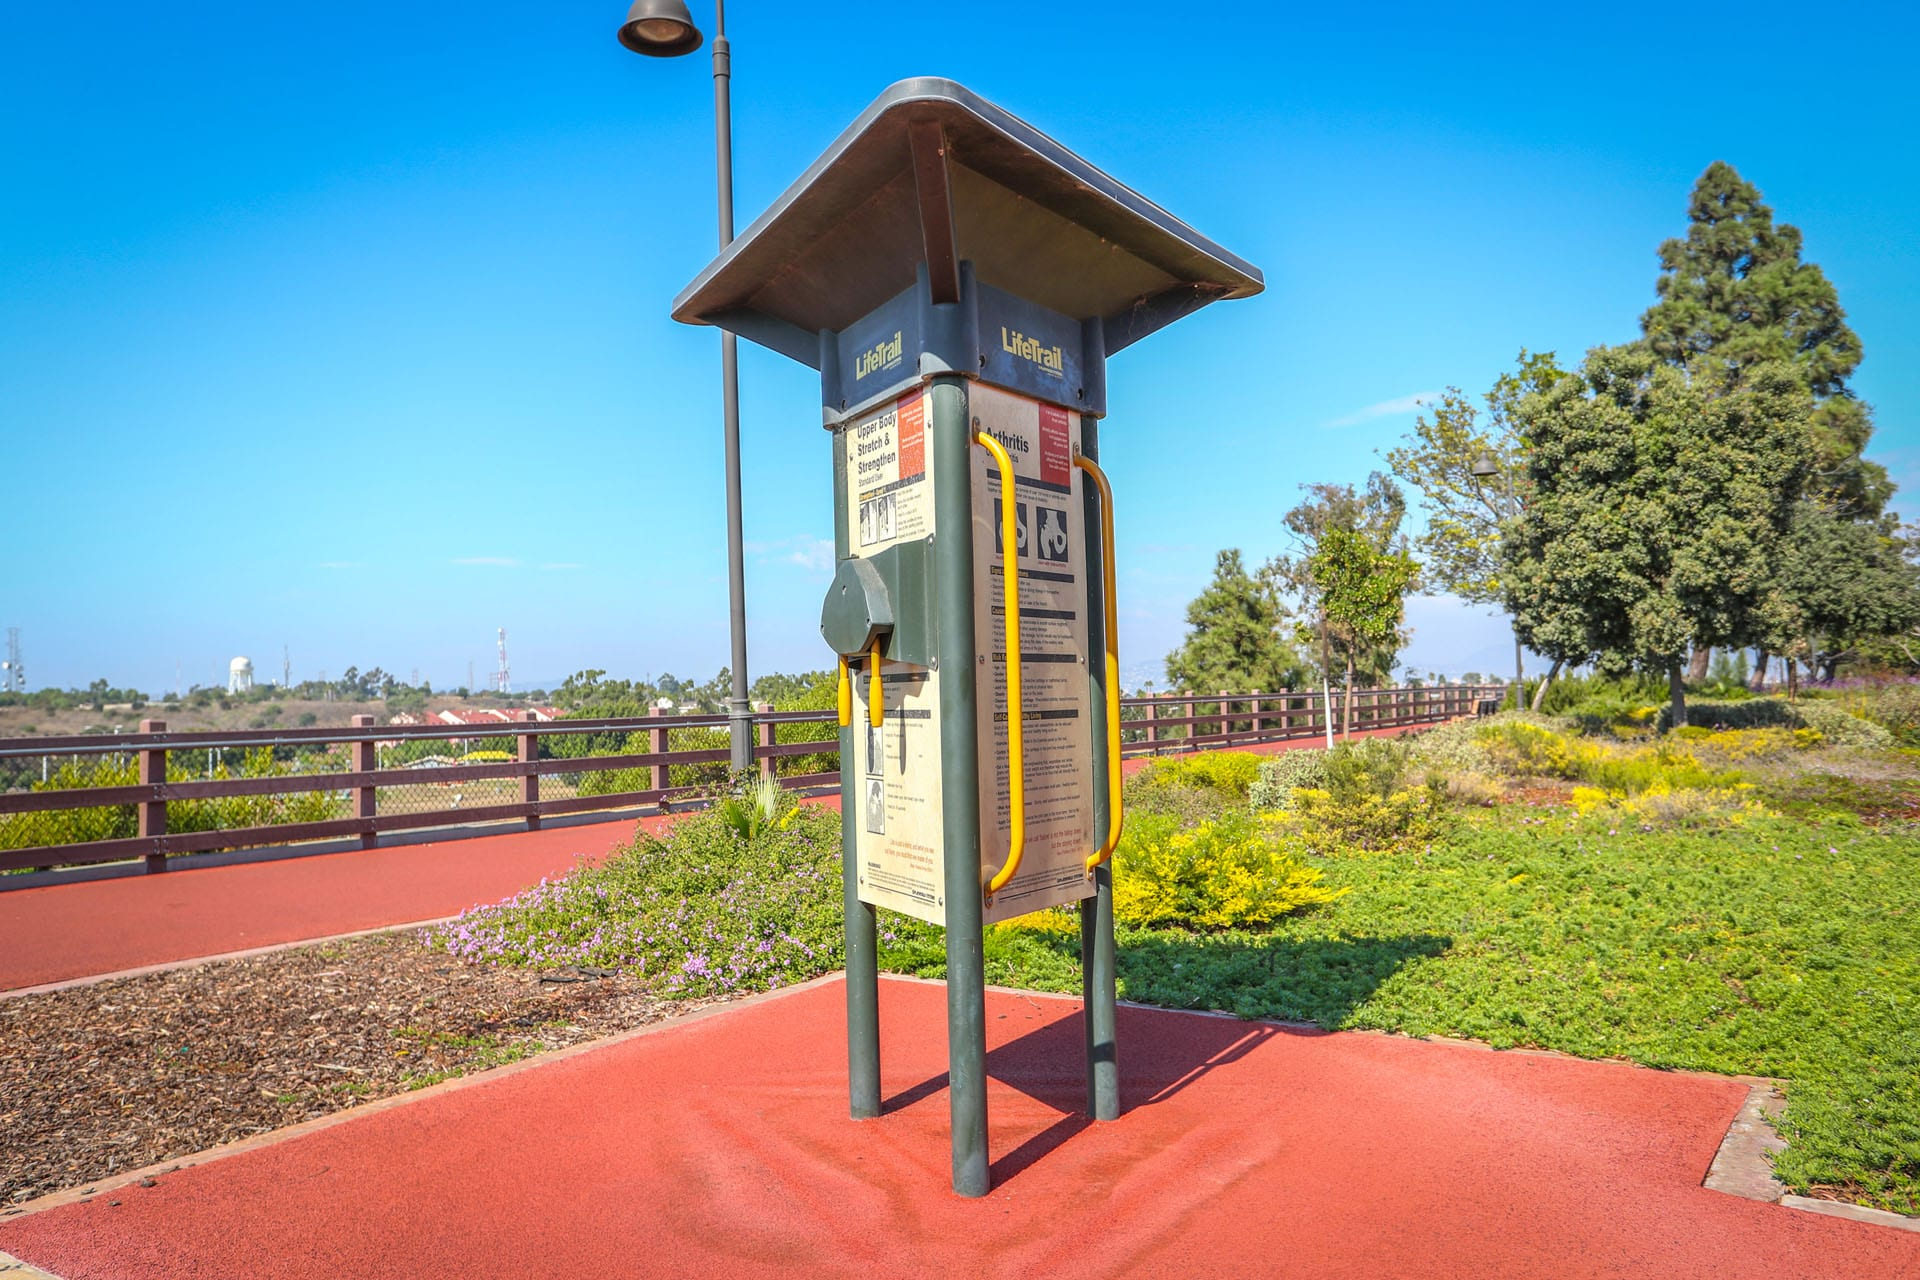 Exercise devices and informational posting next to the track